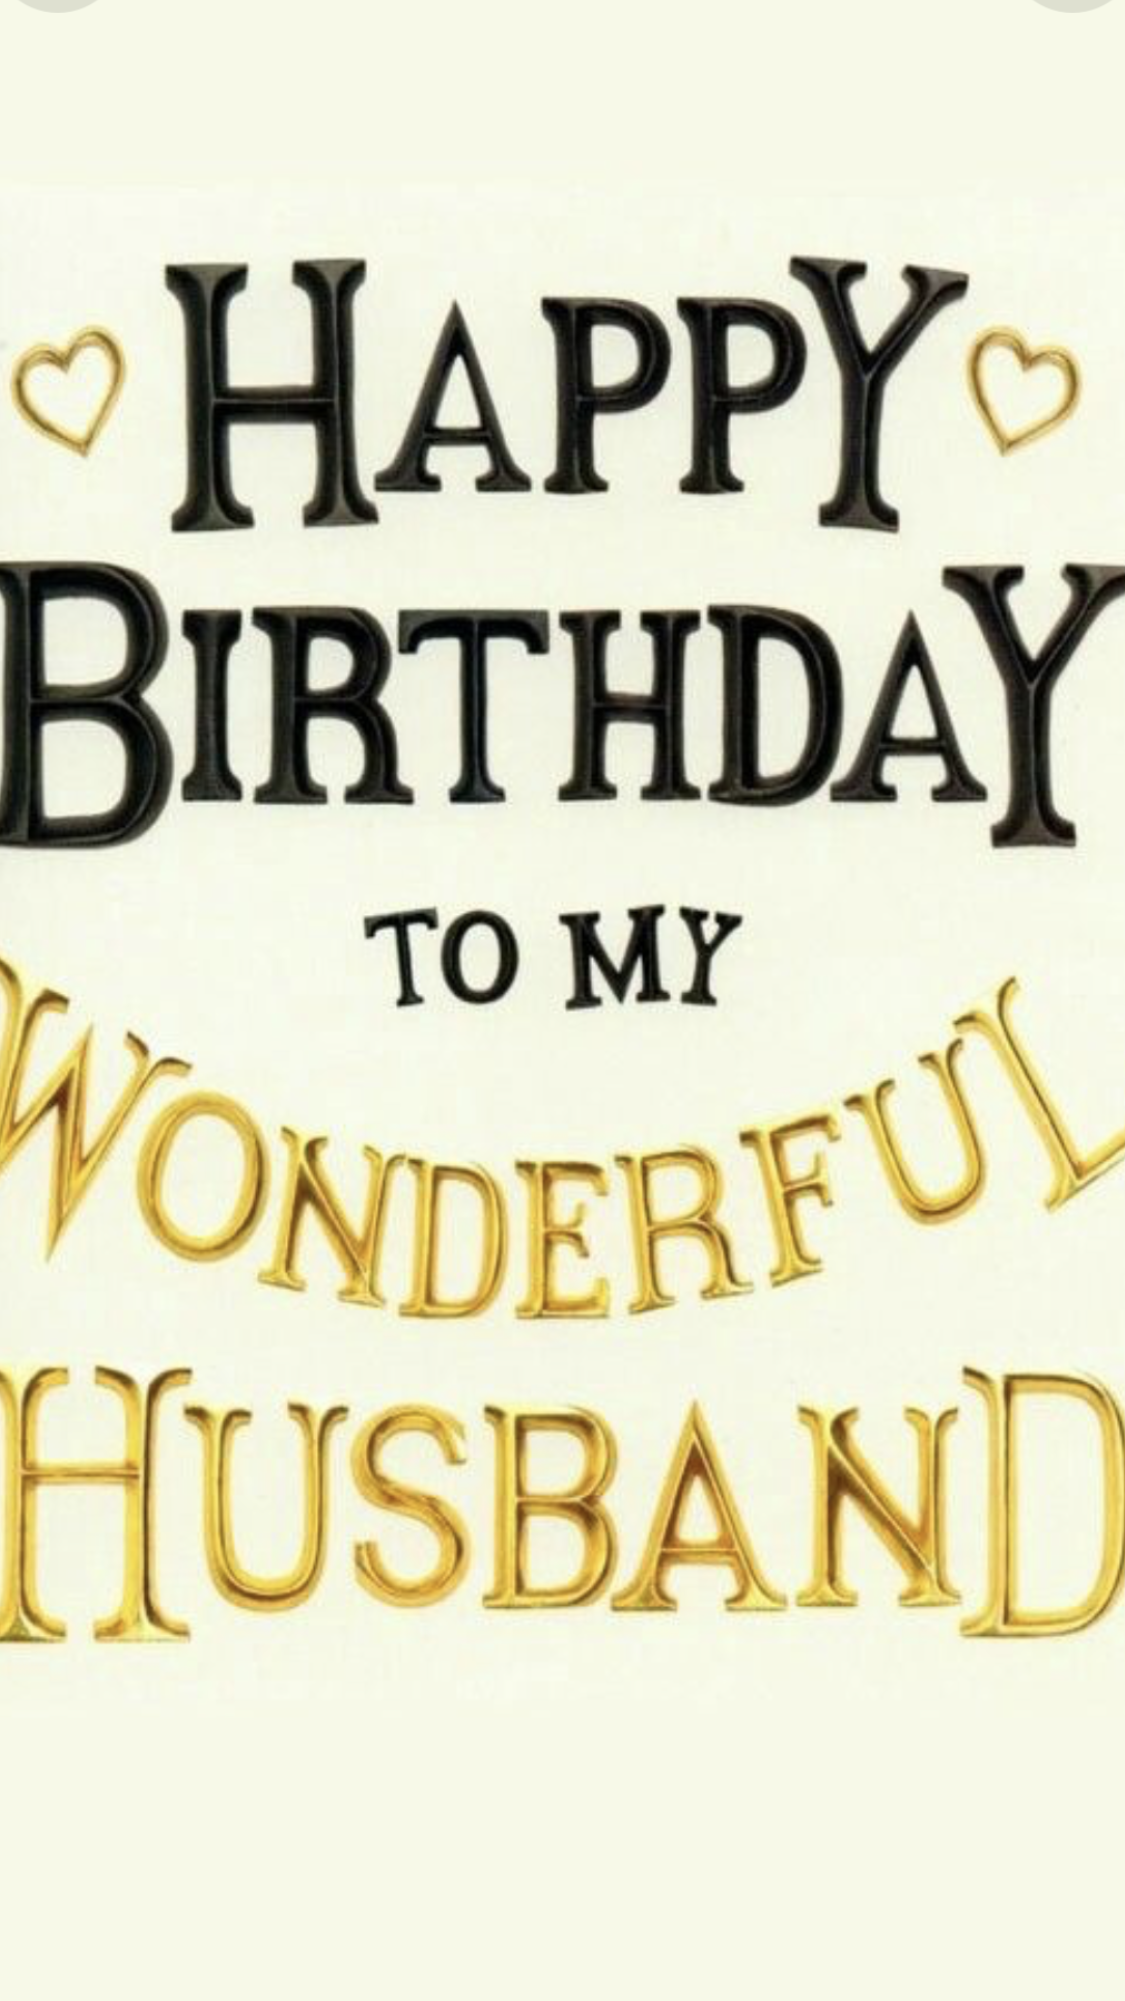 Pin by K on The Hubby.... Birthday wish for husband